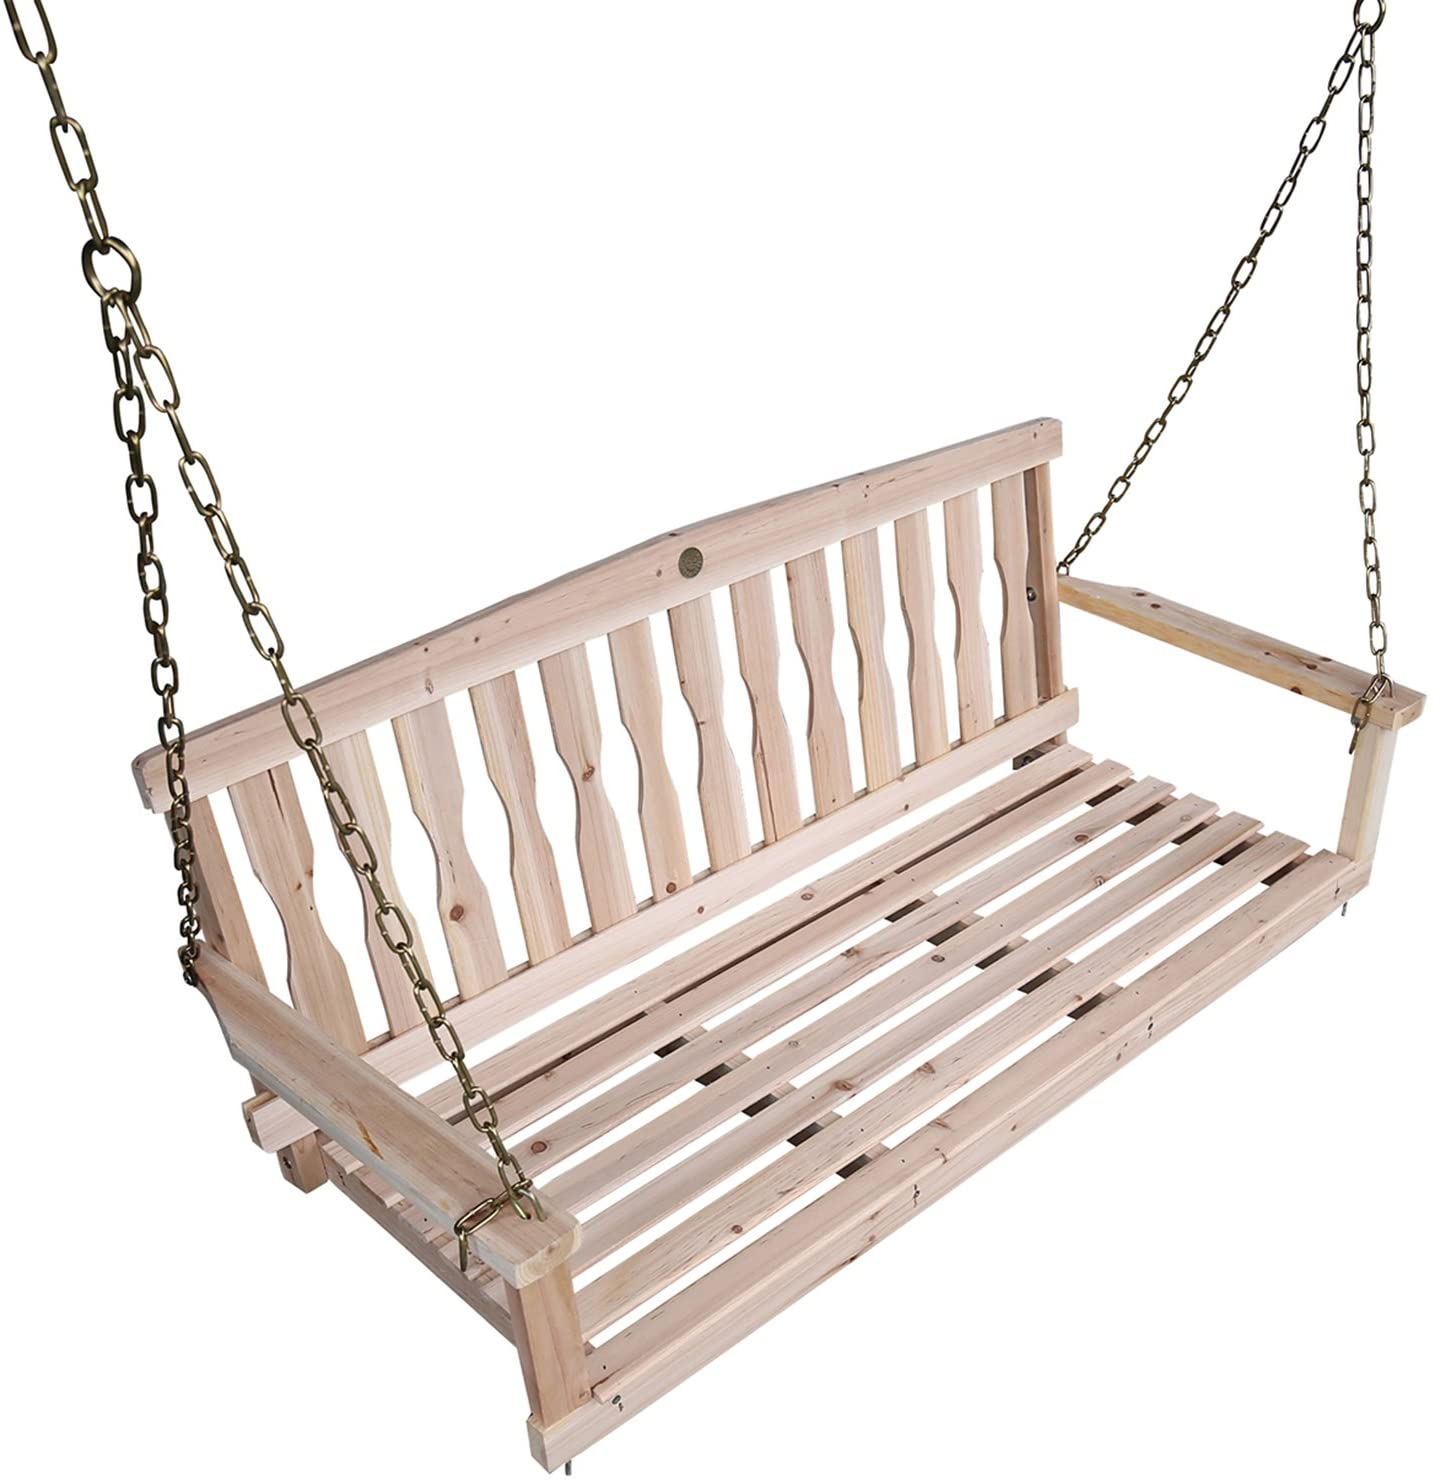 SONGSEN OUTDOOR UNFINISHED 4FT WOODEN PORCH SWING CHAIR